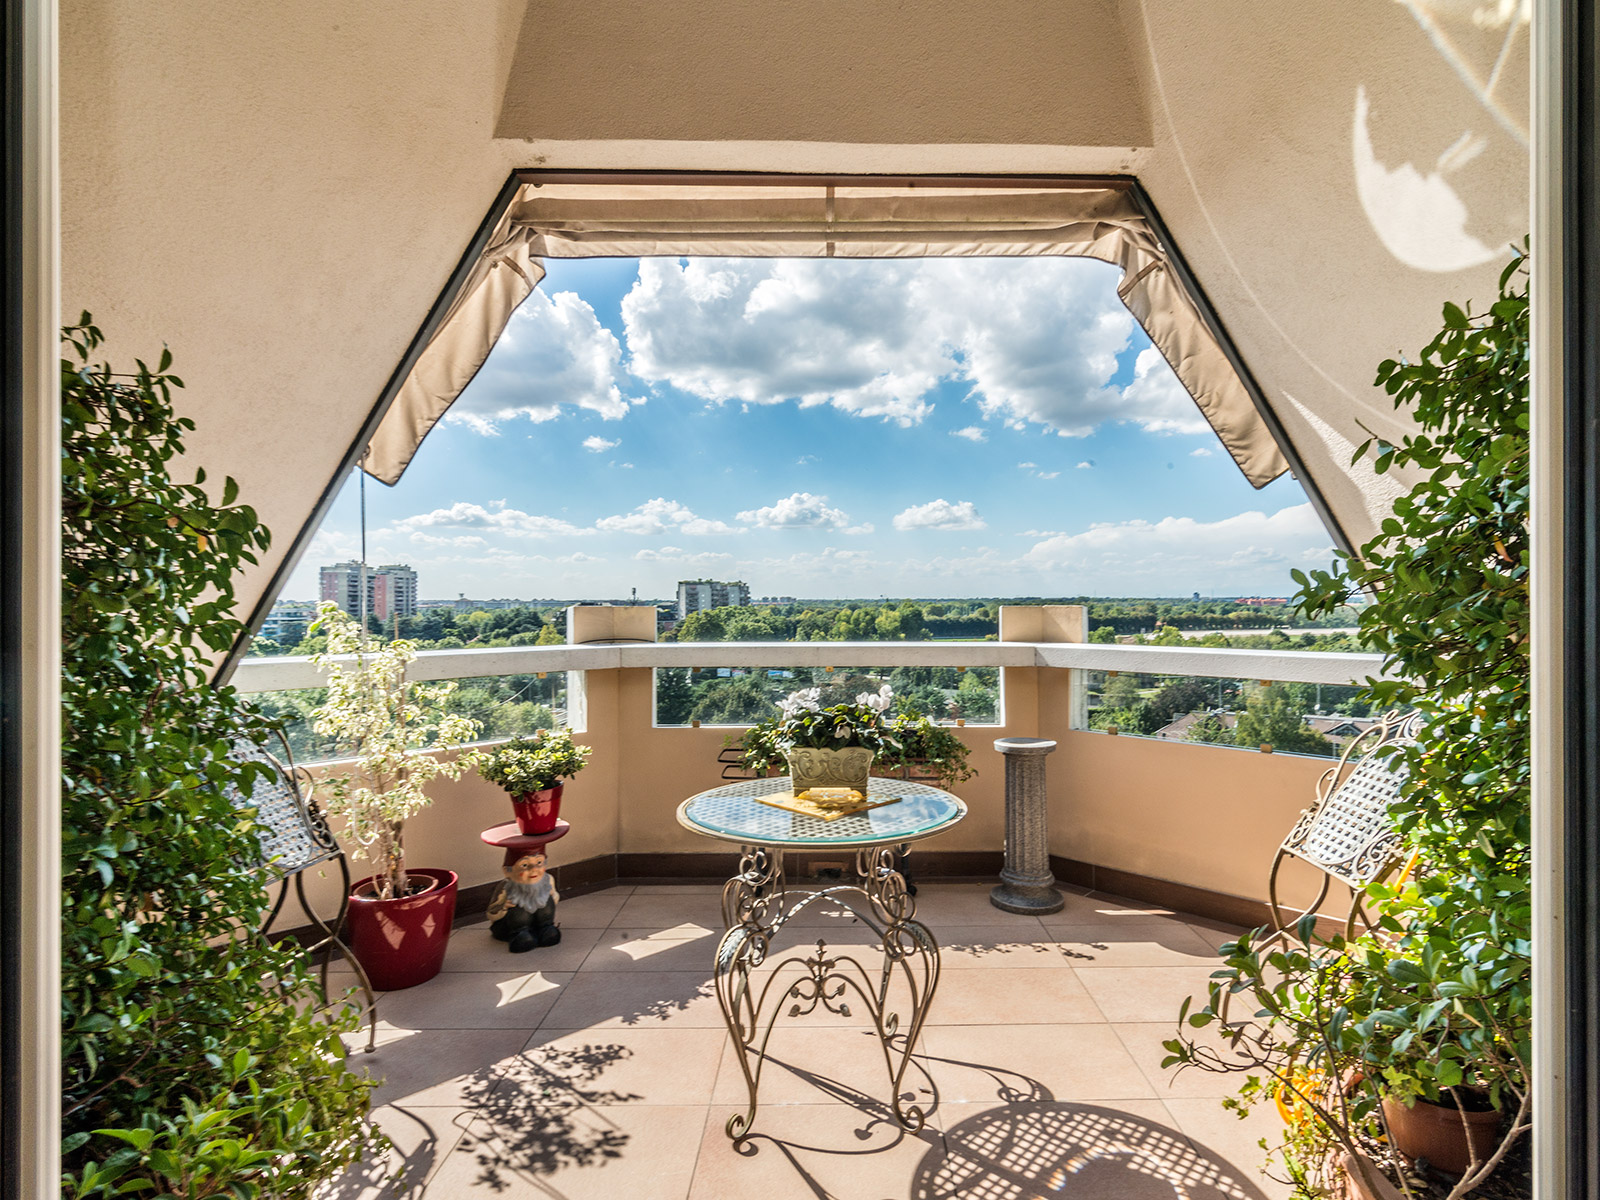 Additional photo for property listing at Unique penthouse in San Siro area Via Ippodromo Milano, Milan 20151 Italie